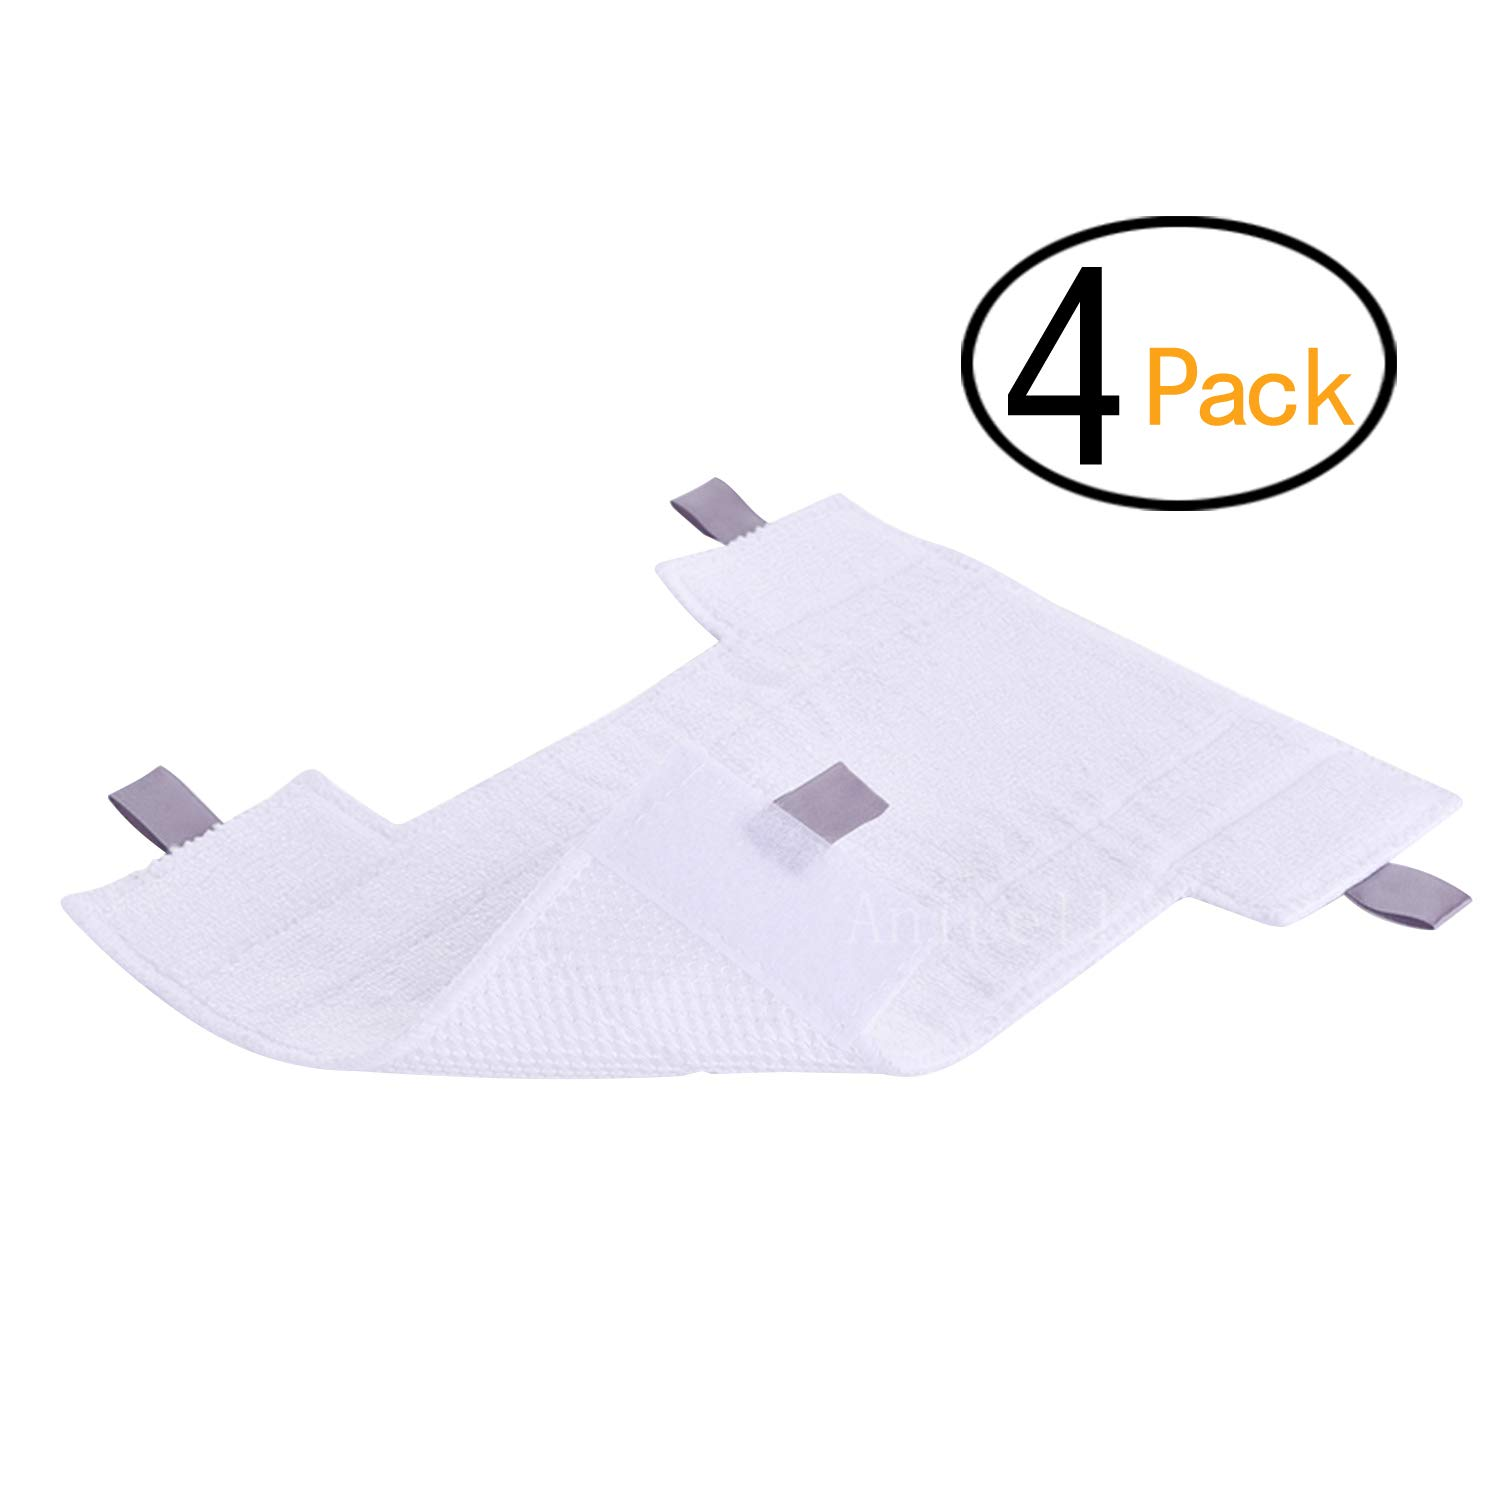 4 Pack Shark Replacement Washable Microfiber Cleaning pad for Shark Dust-Away, Rotator, Navigator Lift-Away Pro Vacuum, Ultra Light Stick Vacuum Cleaner - Part # P200W